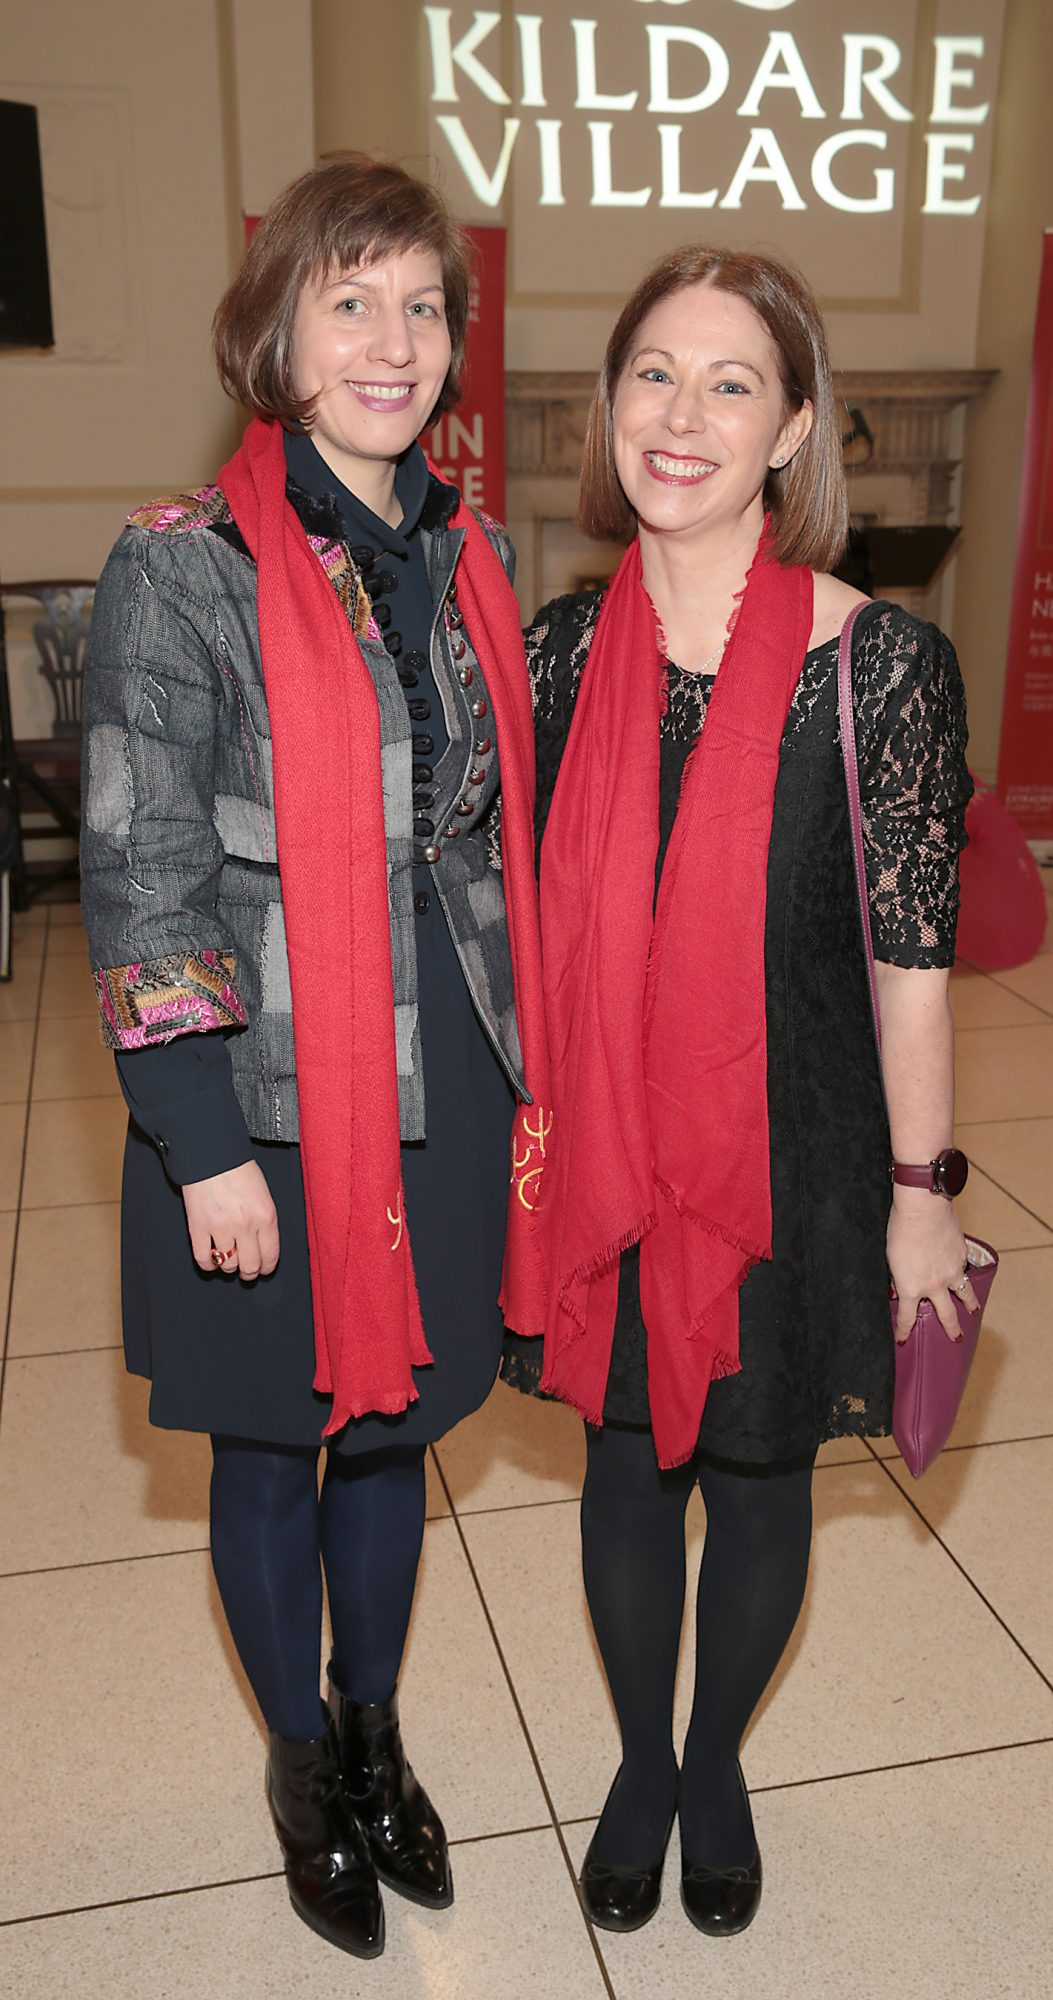 Aimée van Wylick and Giselle Mansfield pictured at the official opening event of Dublin Chinese New Year Festival 2019 at The Hugh Lane Gallery sponsored by Kildare Village. Dublin Chinese New Year Festival runs until 17th February for more see www.dublinchinesenewyear.com   Pic Brian McEvoy